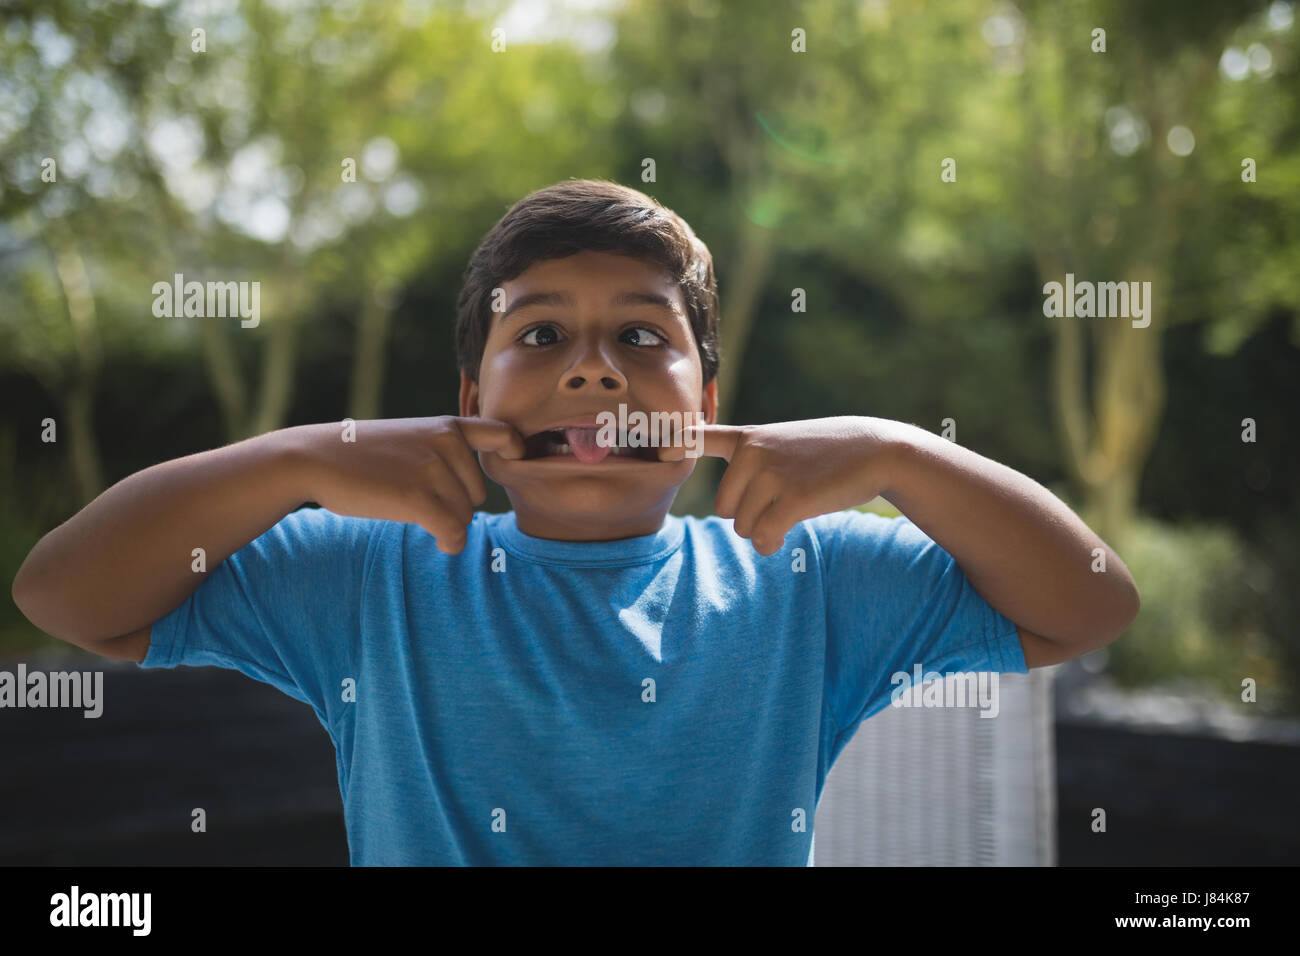 Playful boy teasing while standing at park - Stock Image